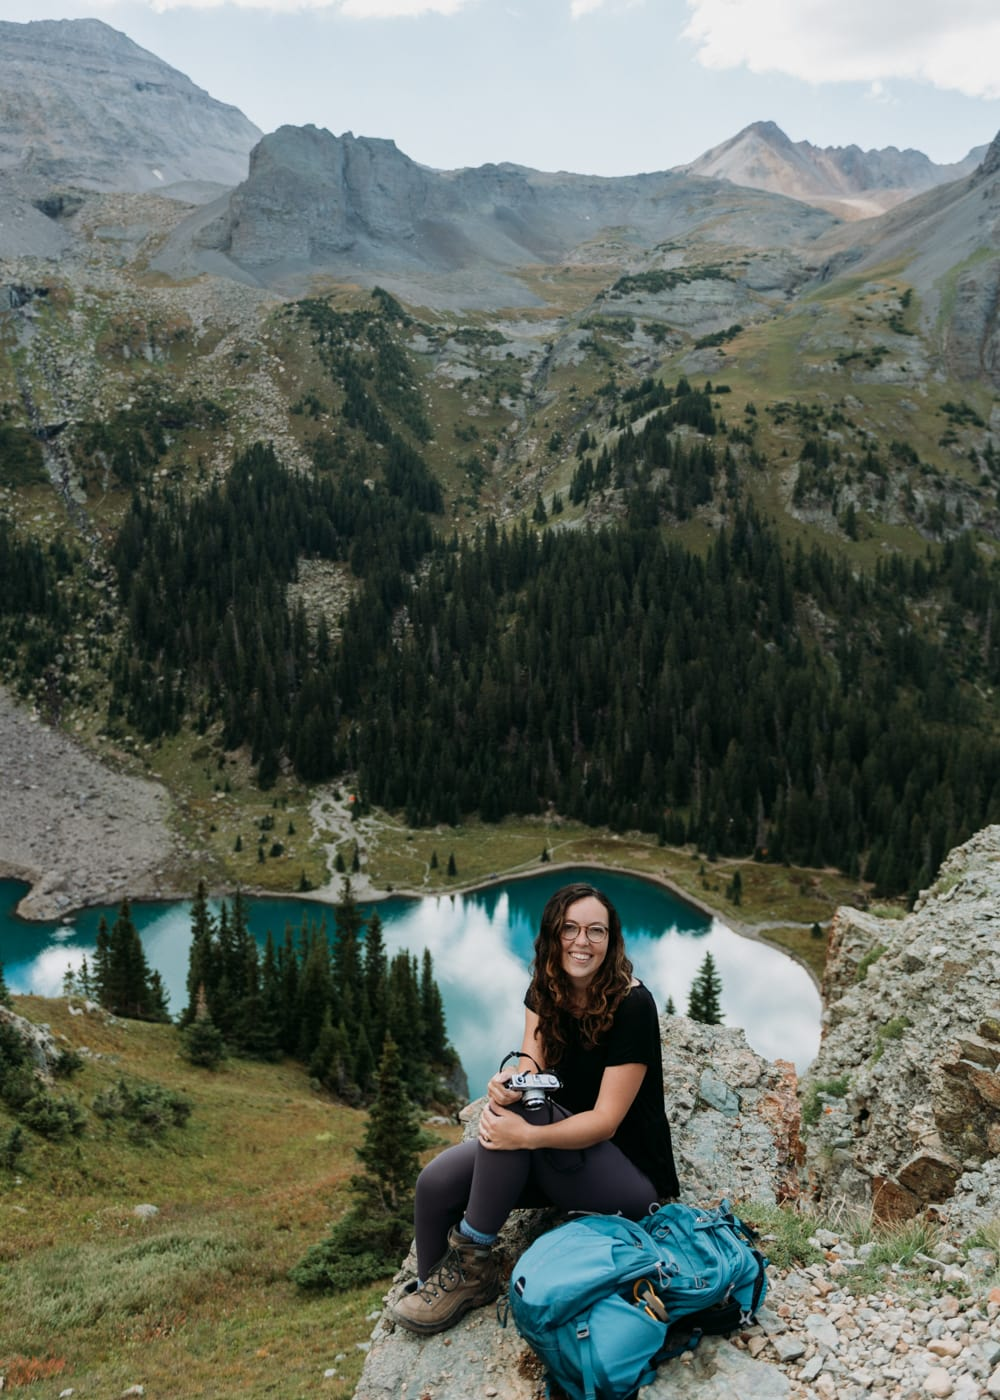 colorado elopement photographer sitting on the edge of a cliff over a turquoise blue lake in Telluride, Colorado